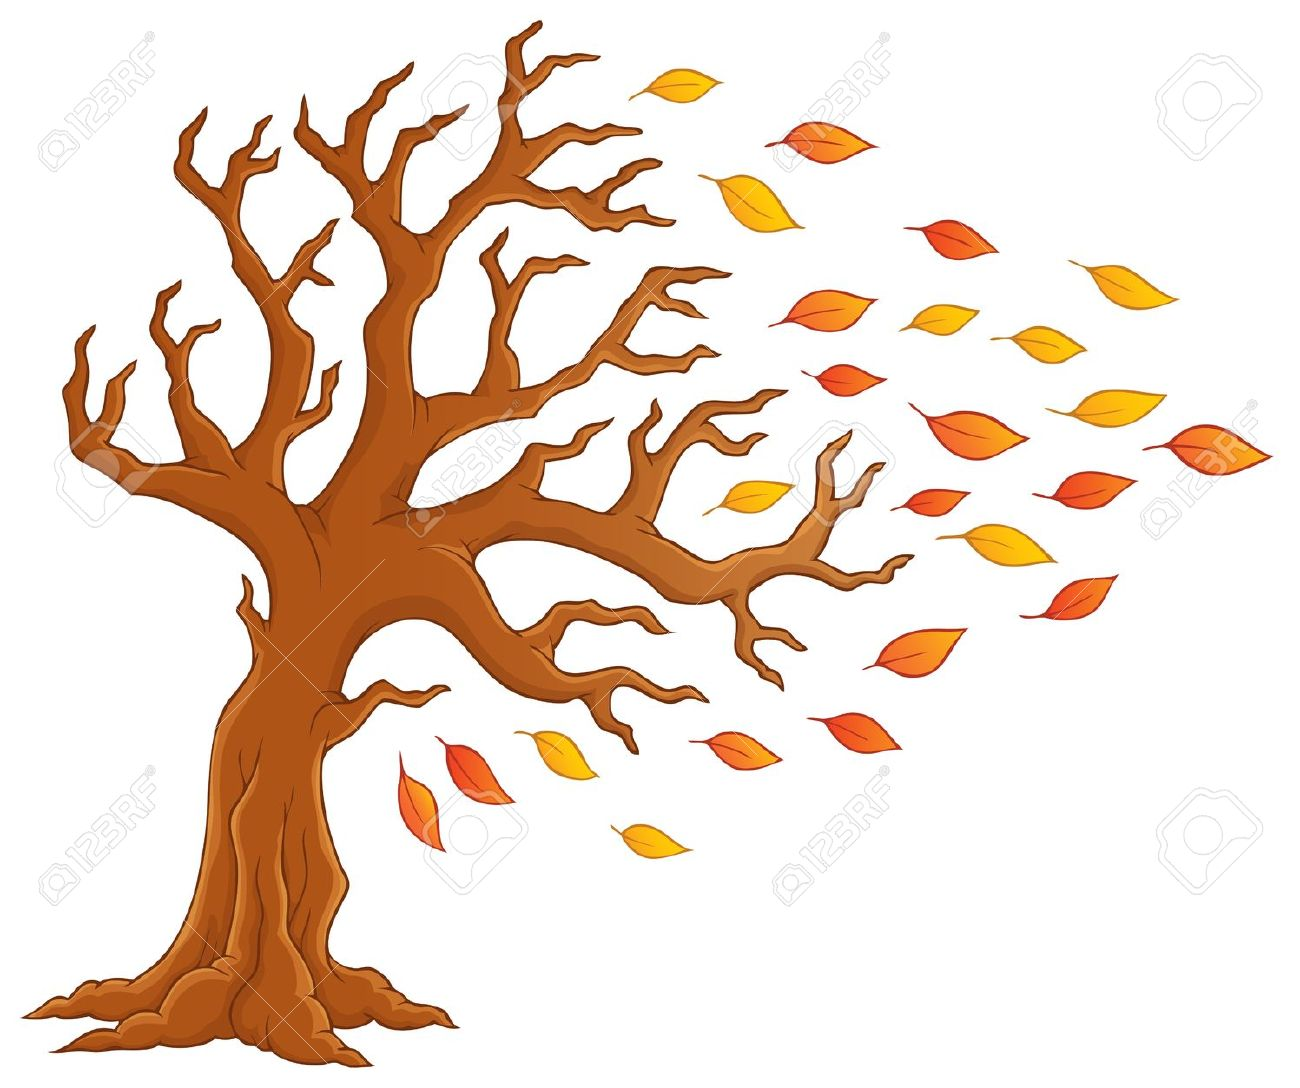 Autumn Tree Theme Image Royalty Free Cliparts, Vectors, And Stock.